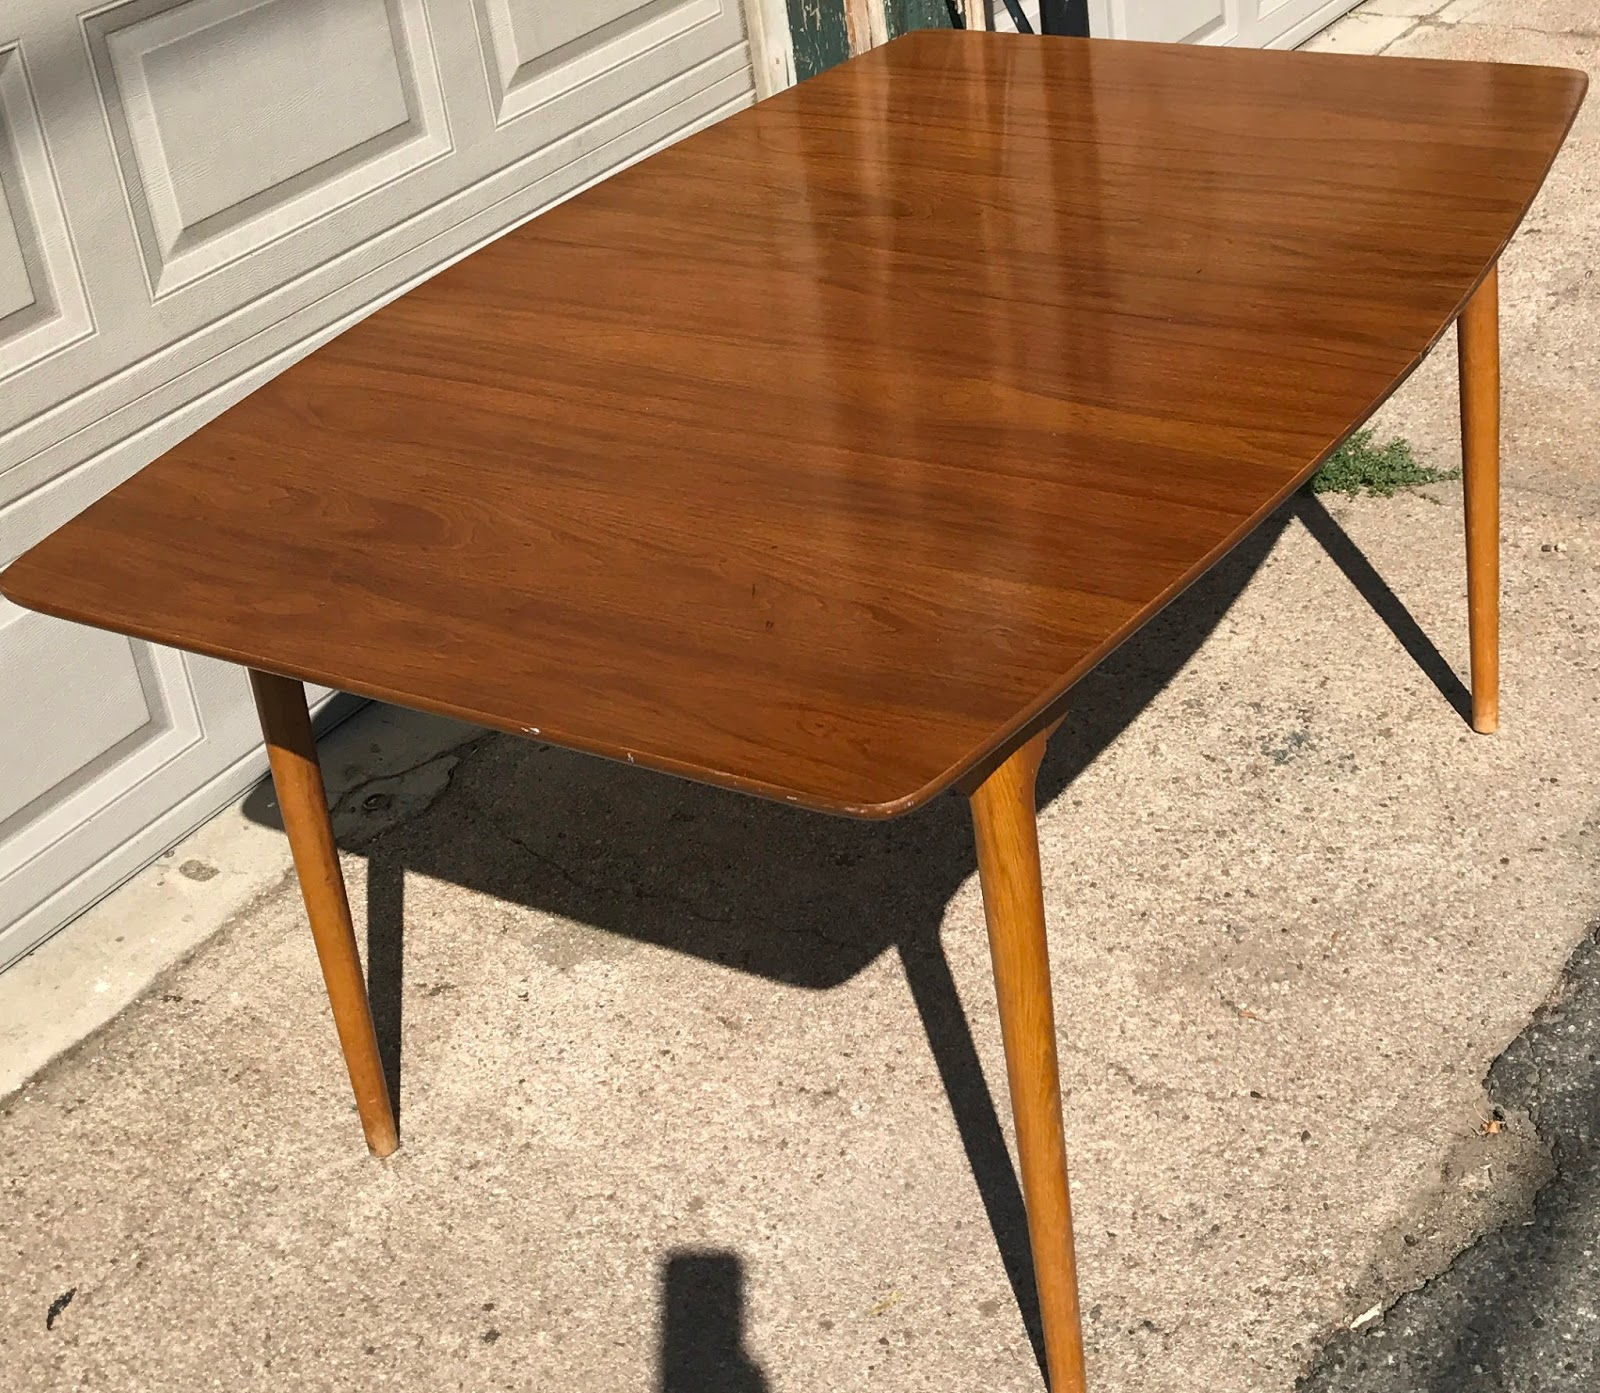 New Mid Century Surboard Dining Table SOLD